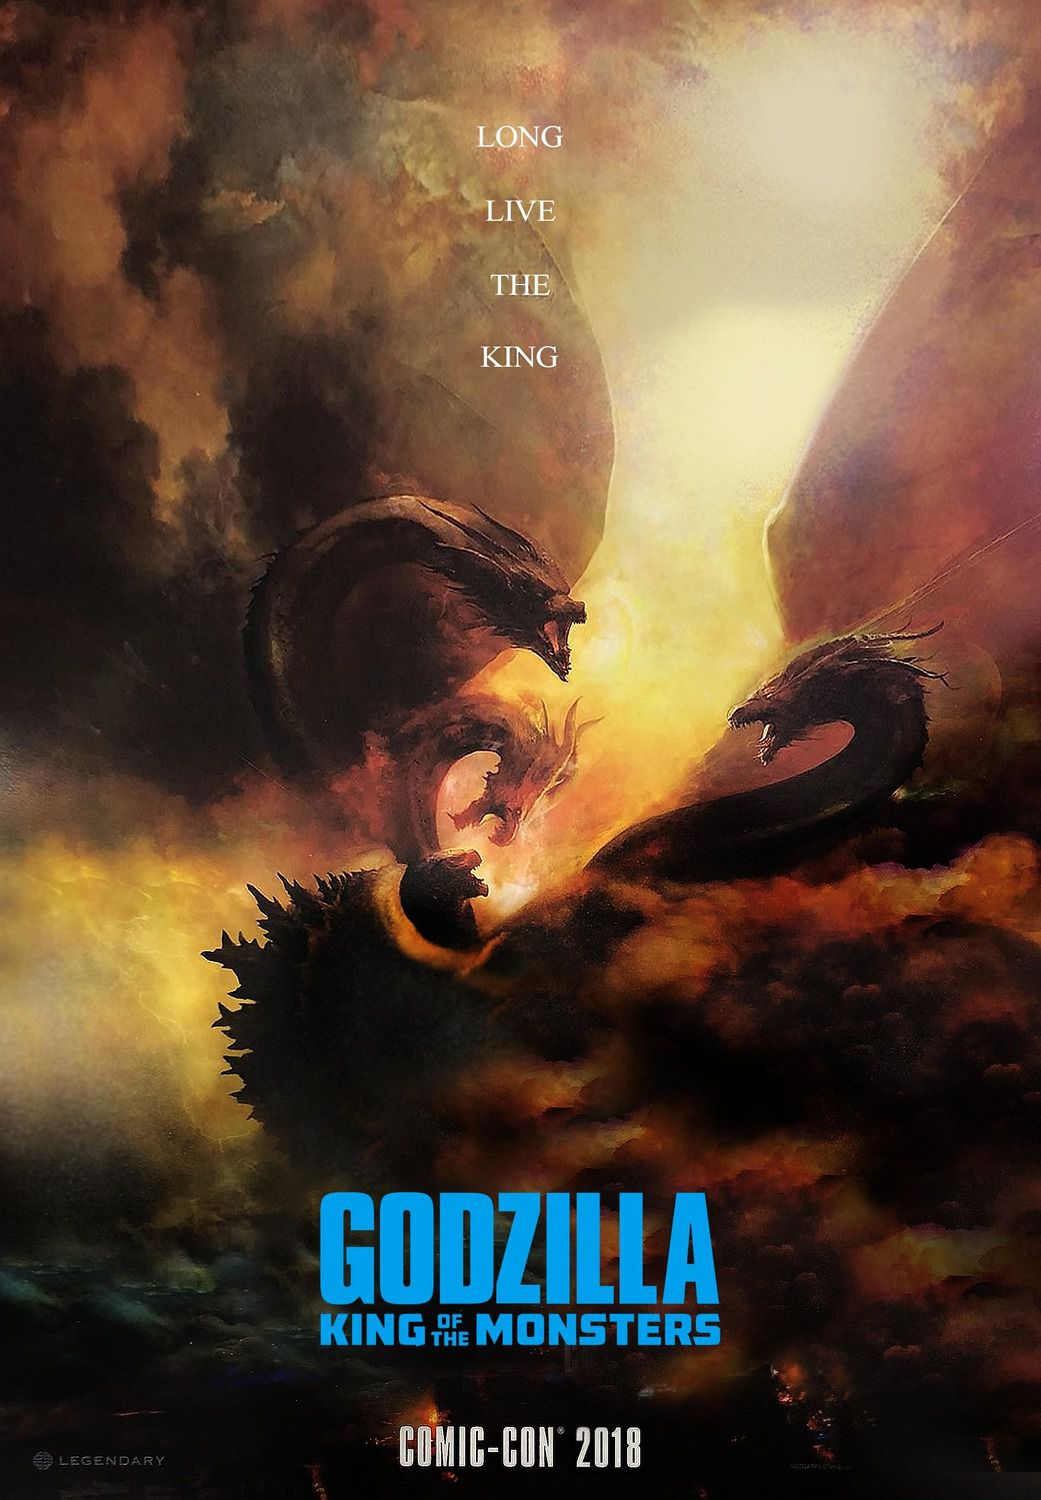 Godzilla King of the Monsters (2019) - film poster